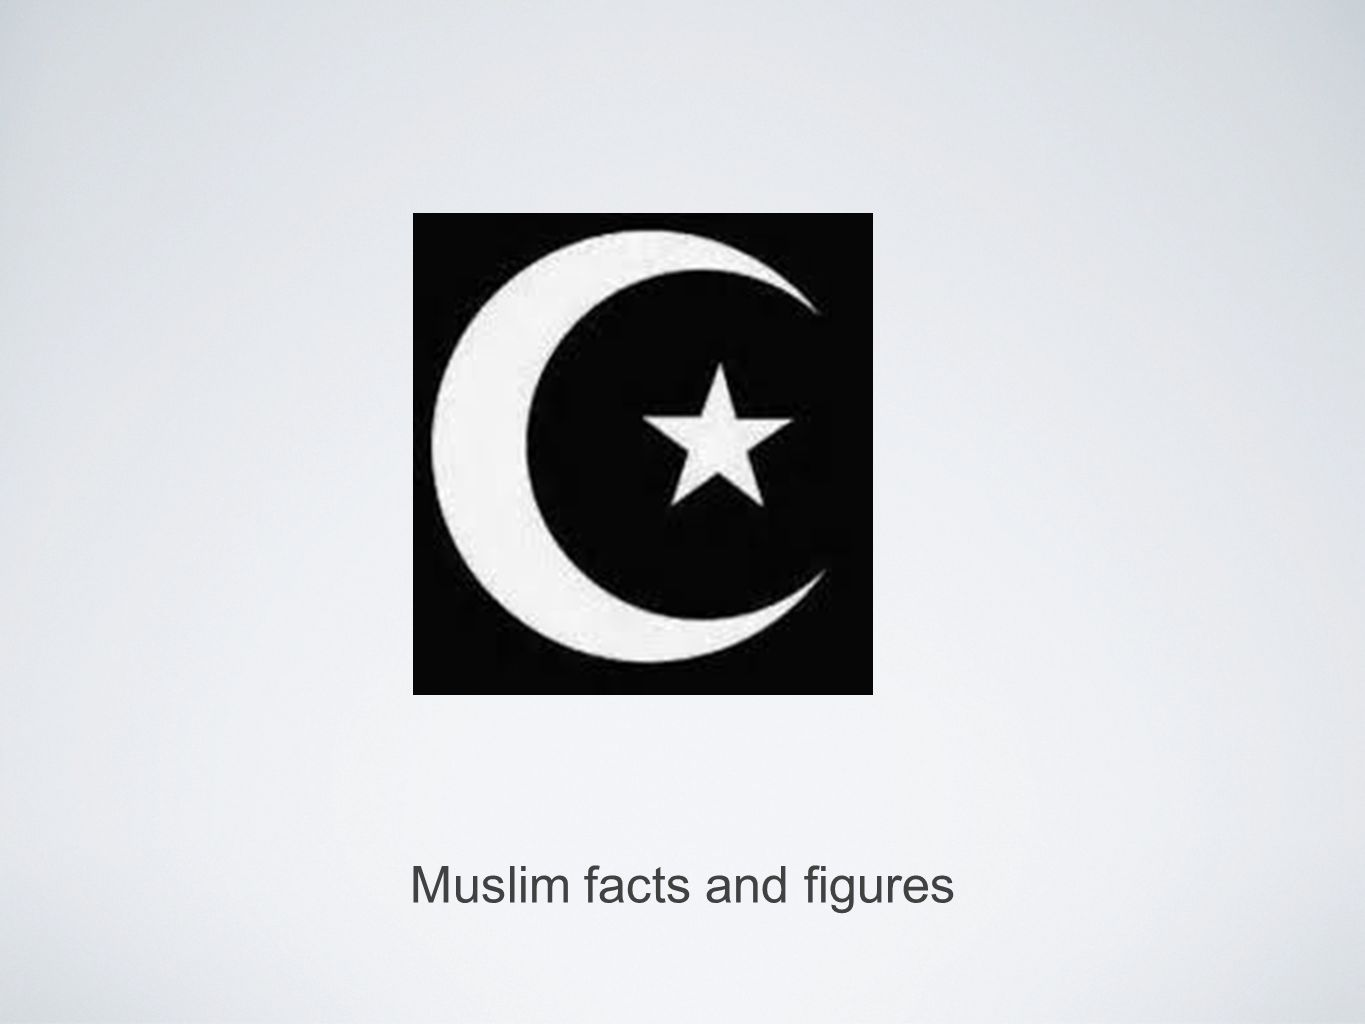 Muslim facts and figures